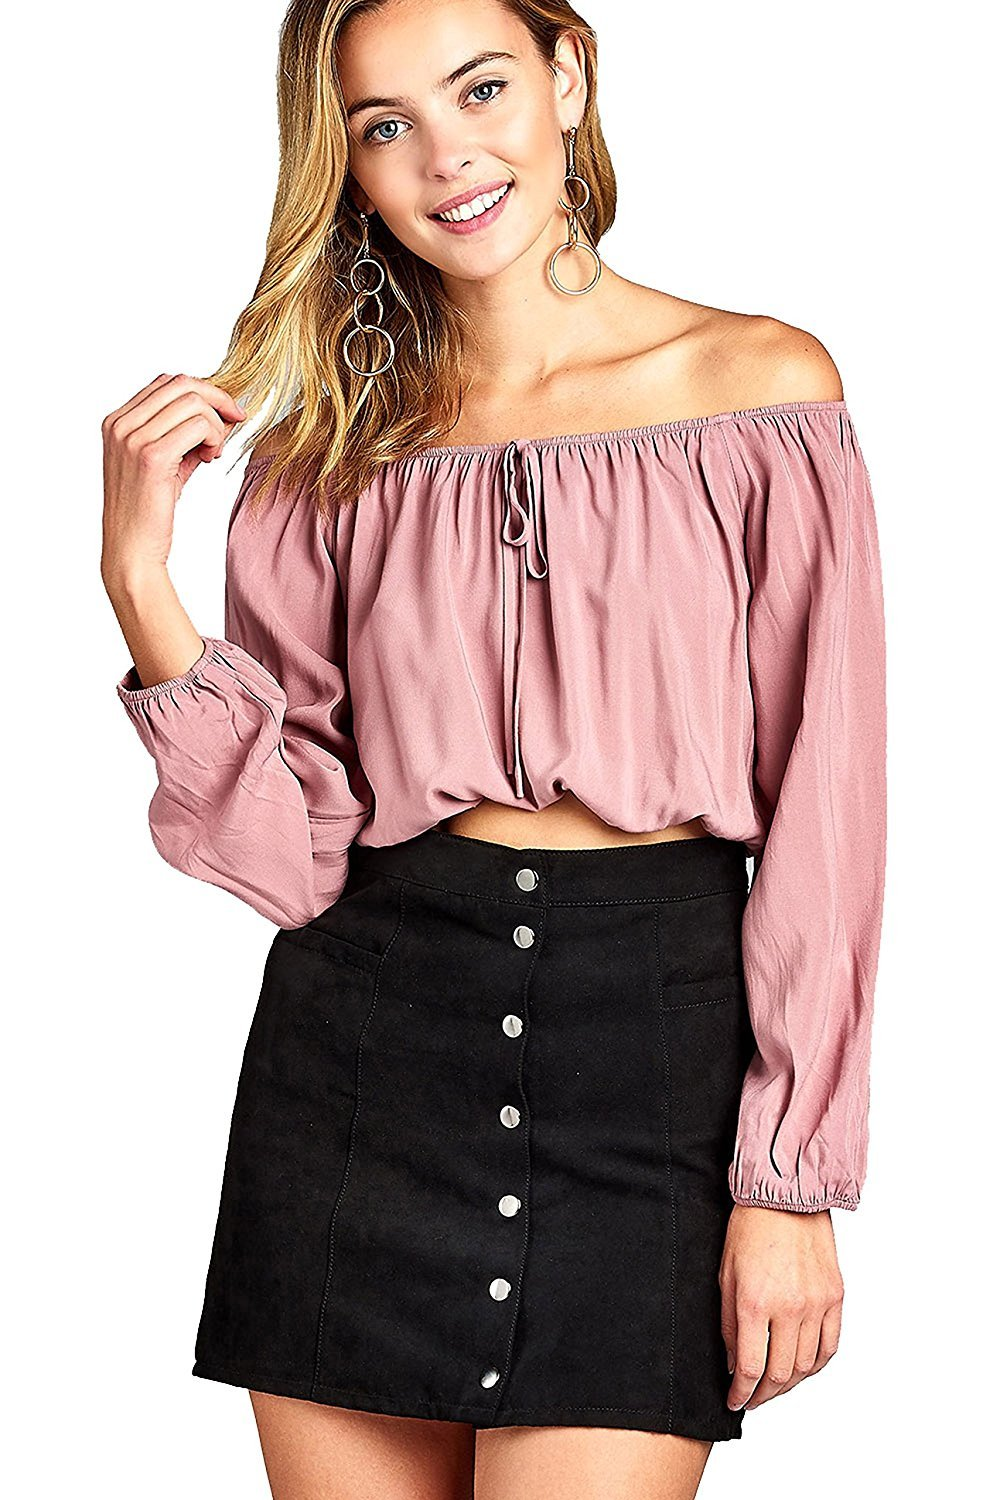 Khanomak Elasticized Off Shoulder Self Tie Neckline Long Sleeve Crop Top